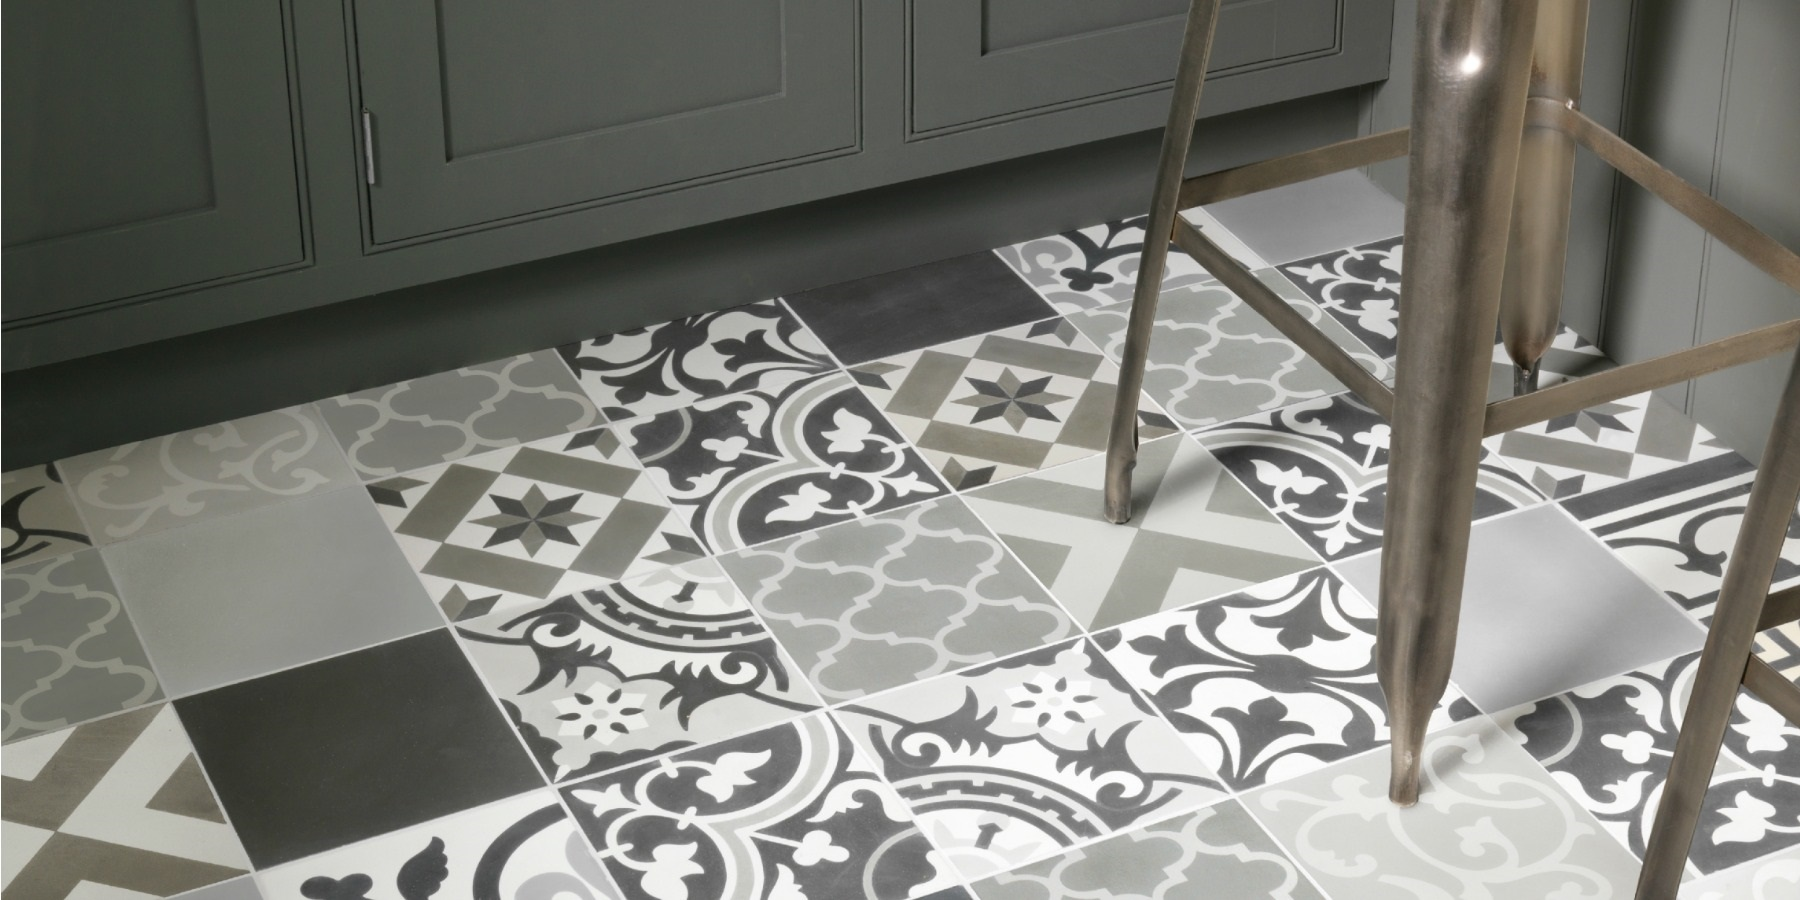 Ca'Pietra Encaustic Tiles - Burlanes are official suppliers of beautiful Ca'Pietra handmade Encaustic tiles and flooring.